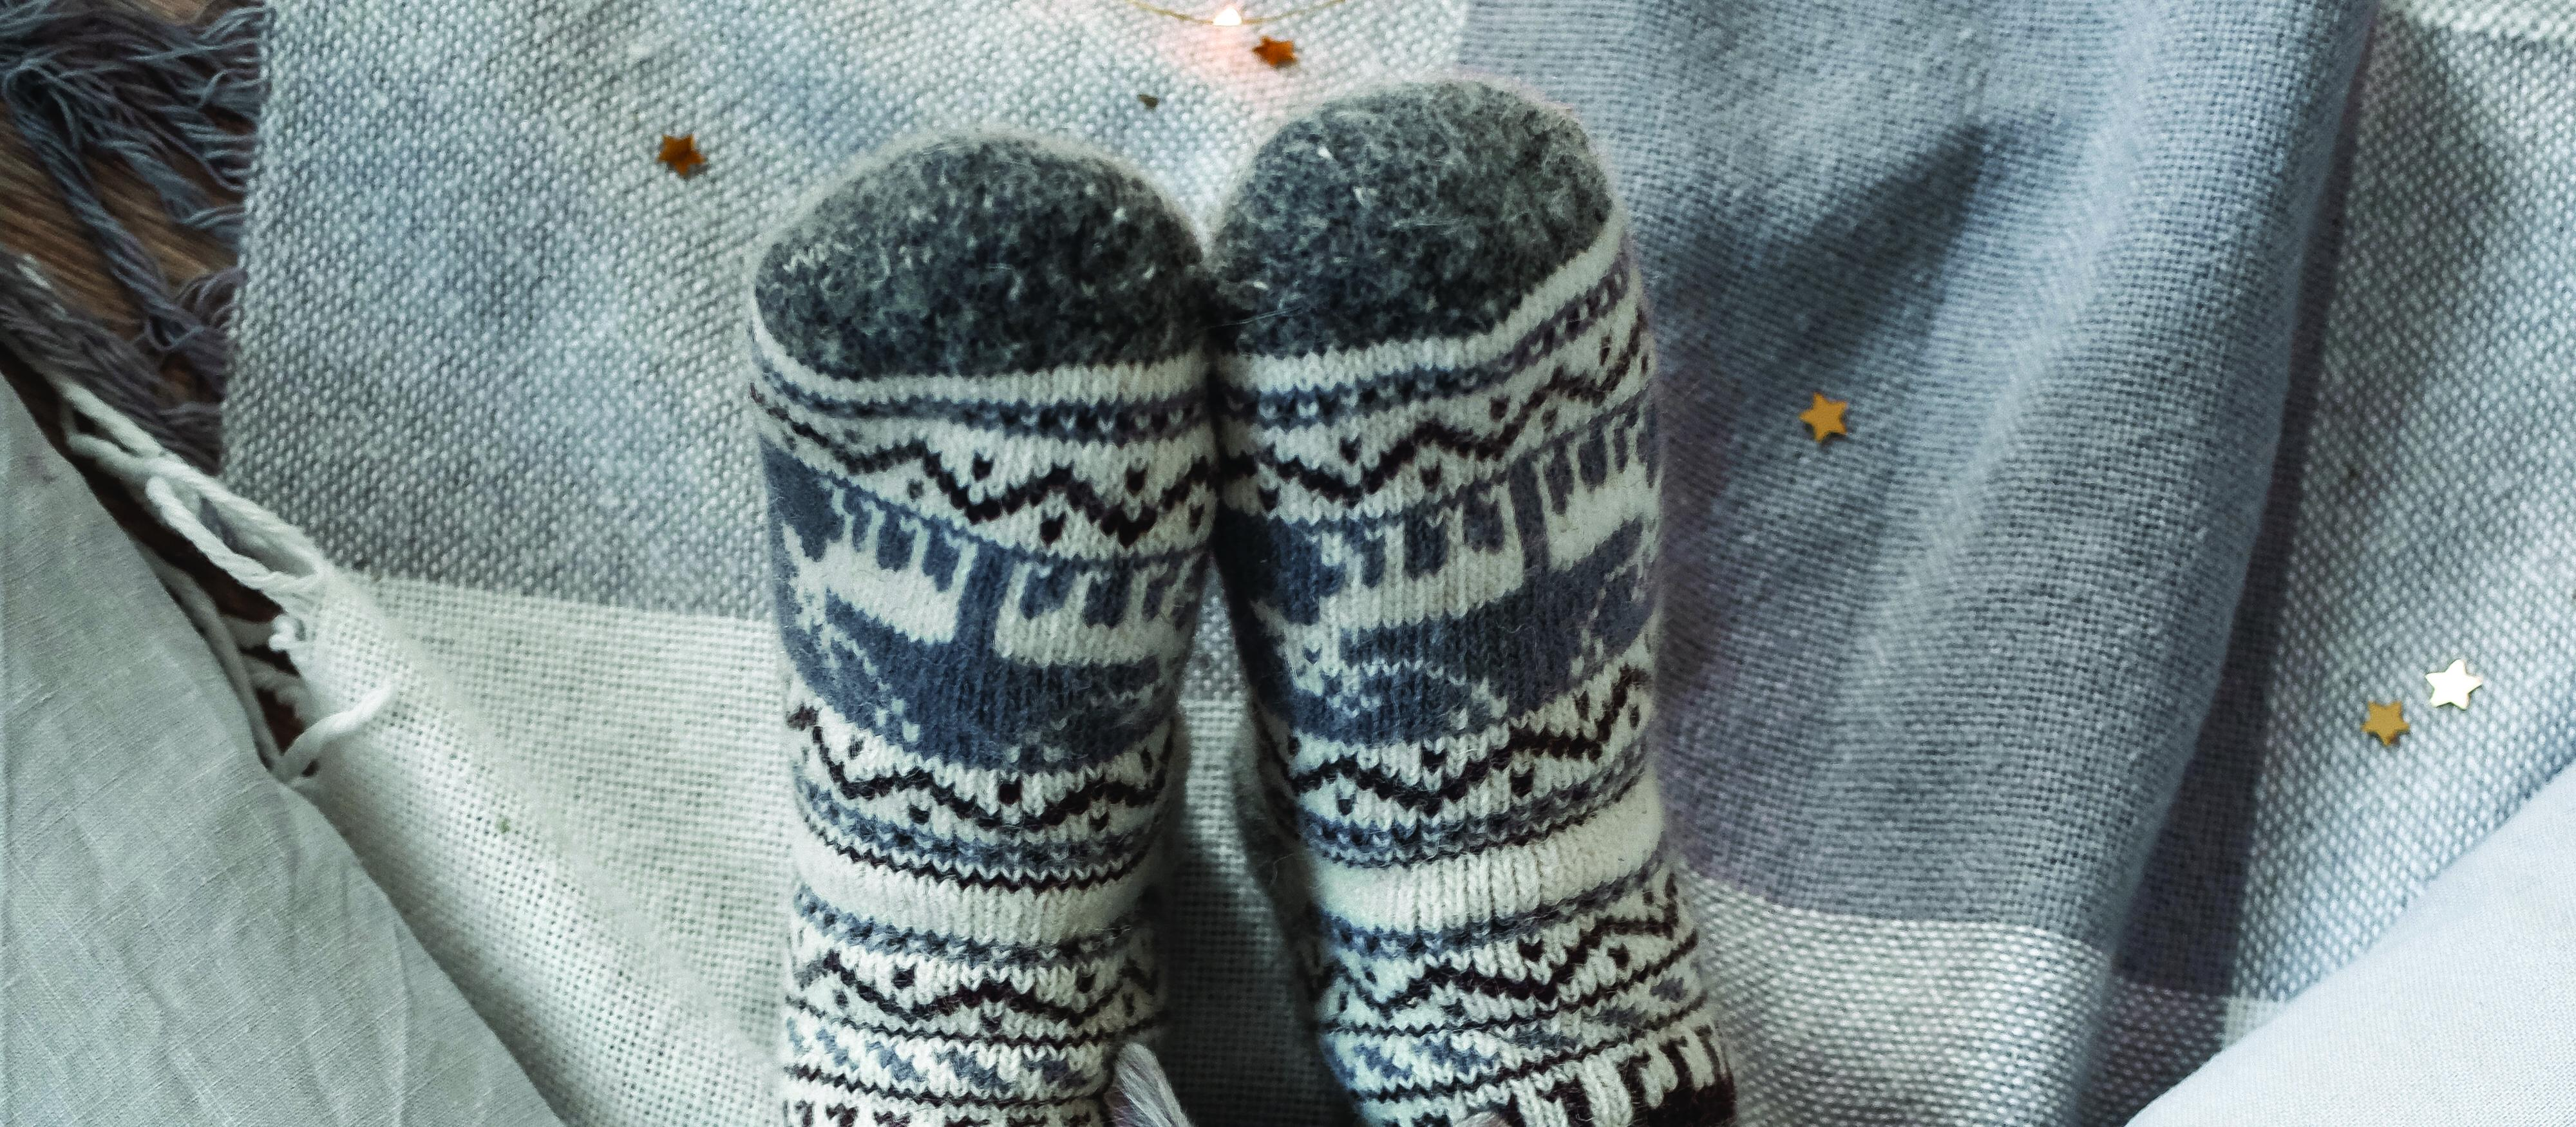 Woolly socks, winter warmers, cat, warmth